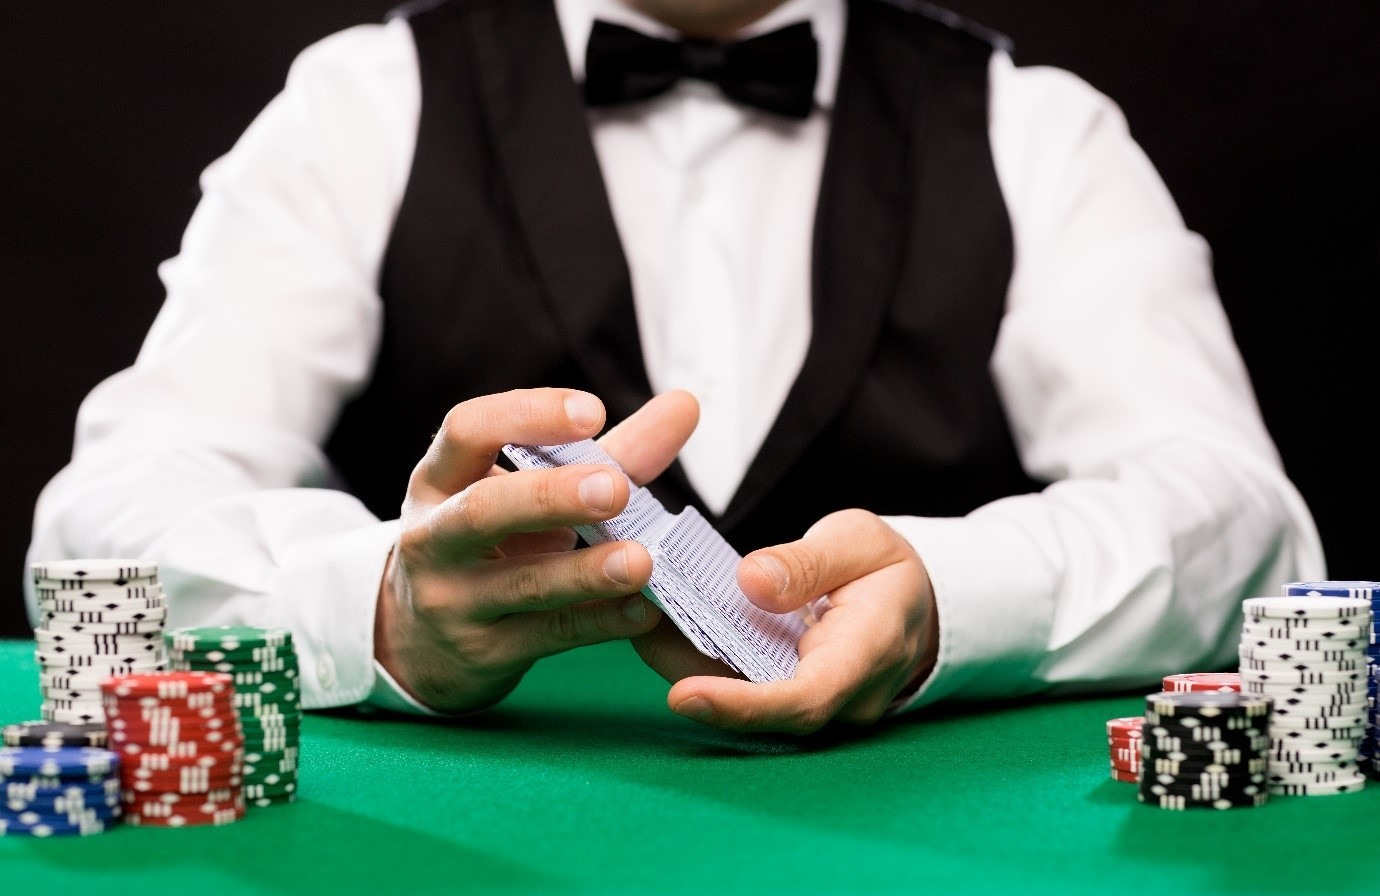 What is the role of a live dealer at an online casino?